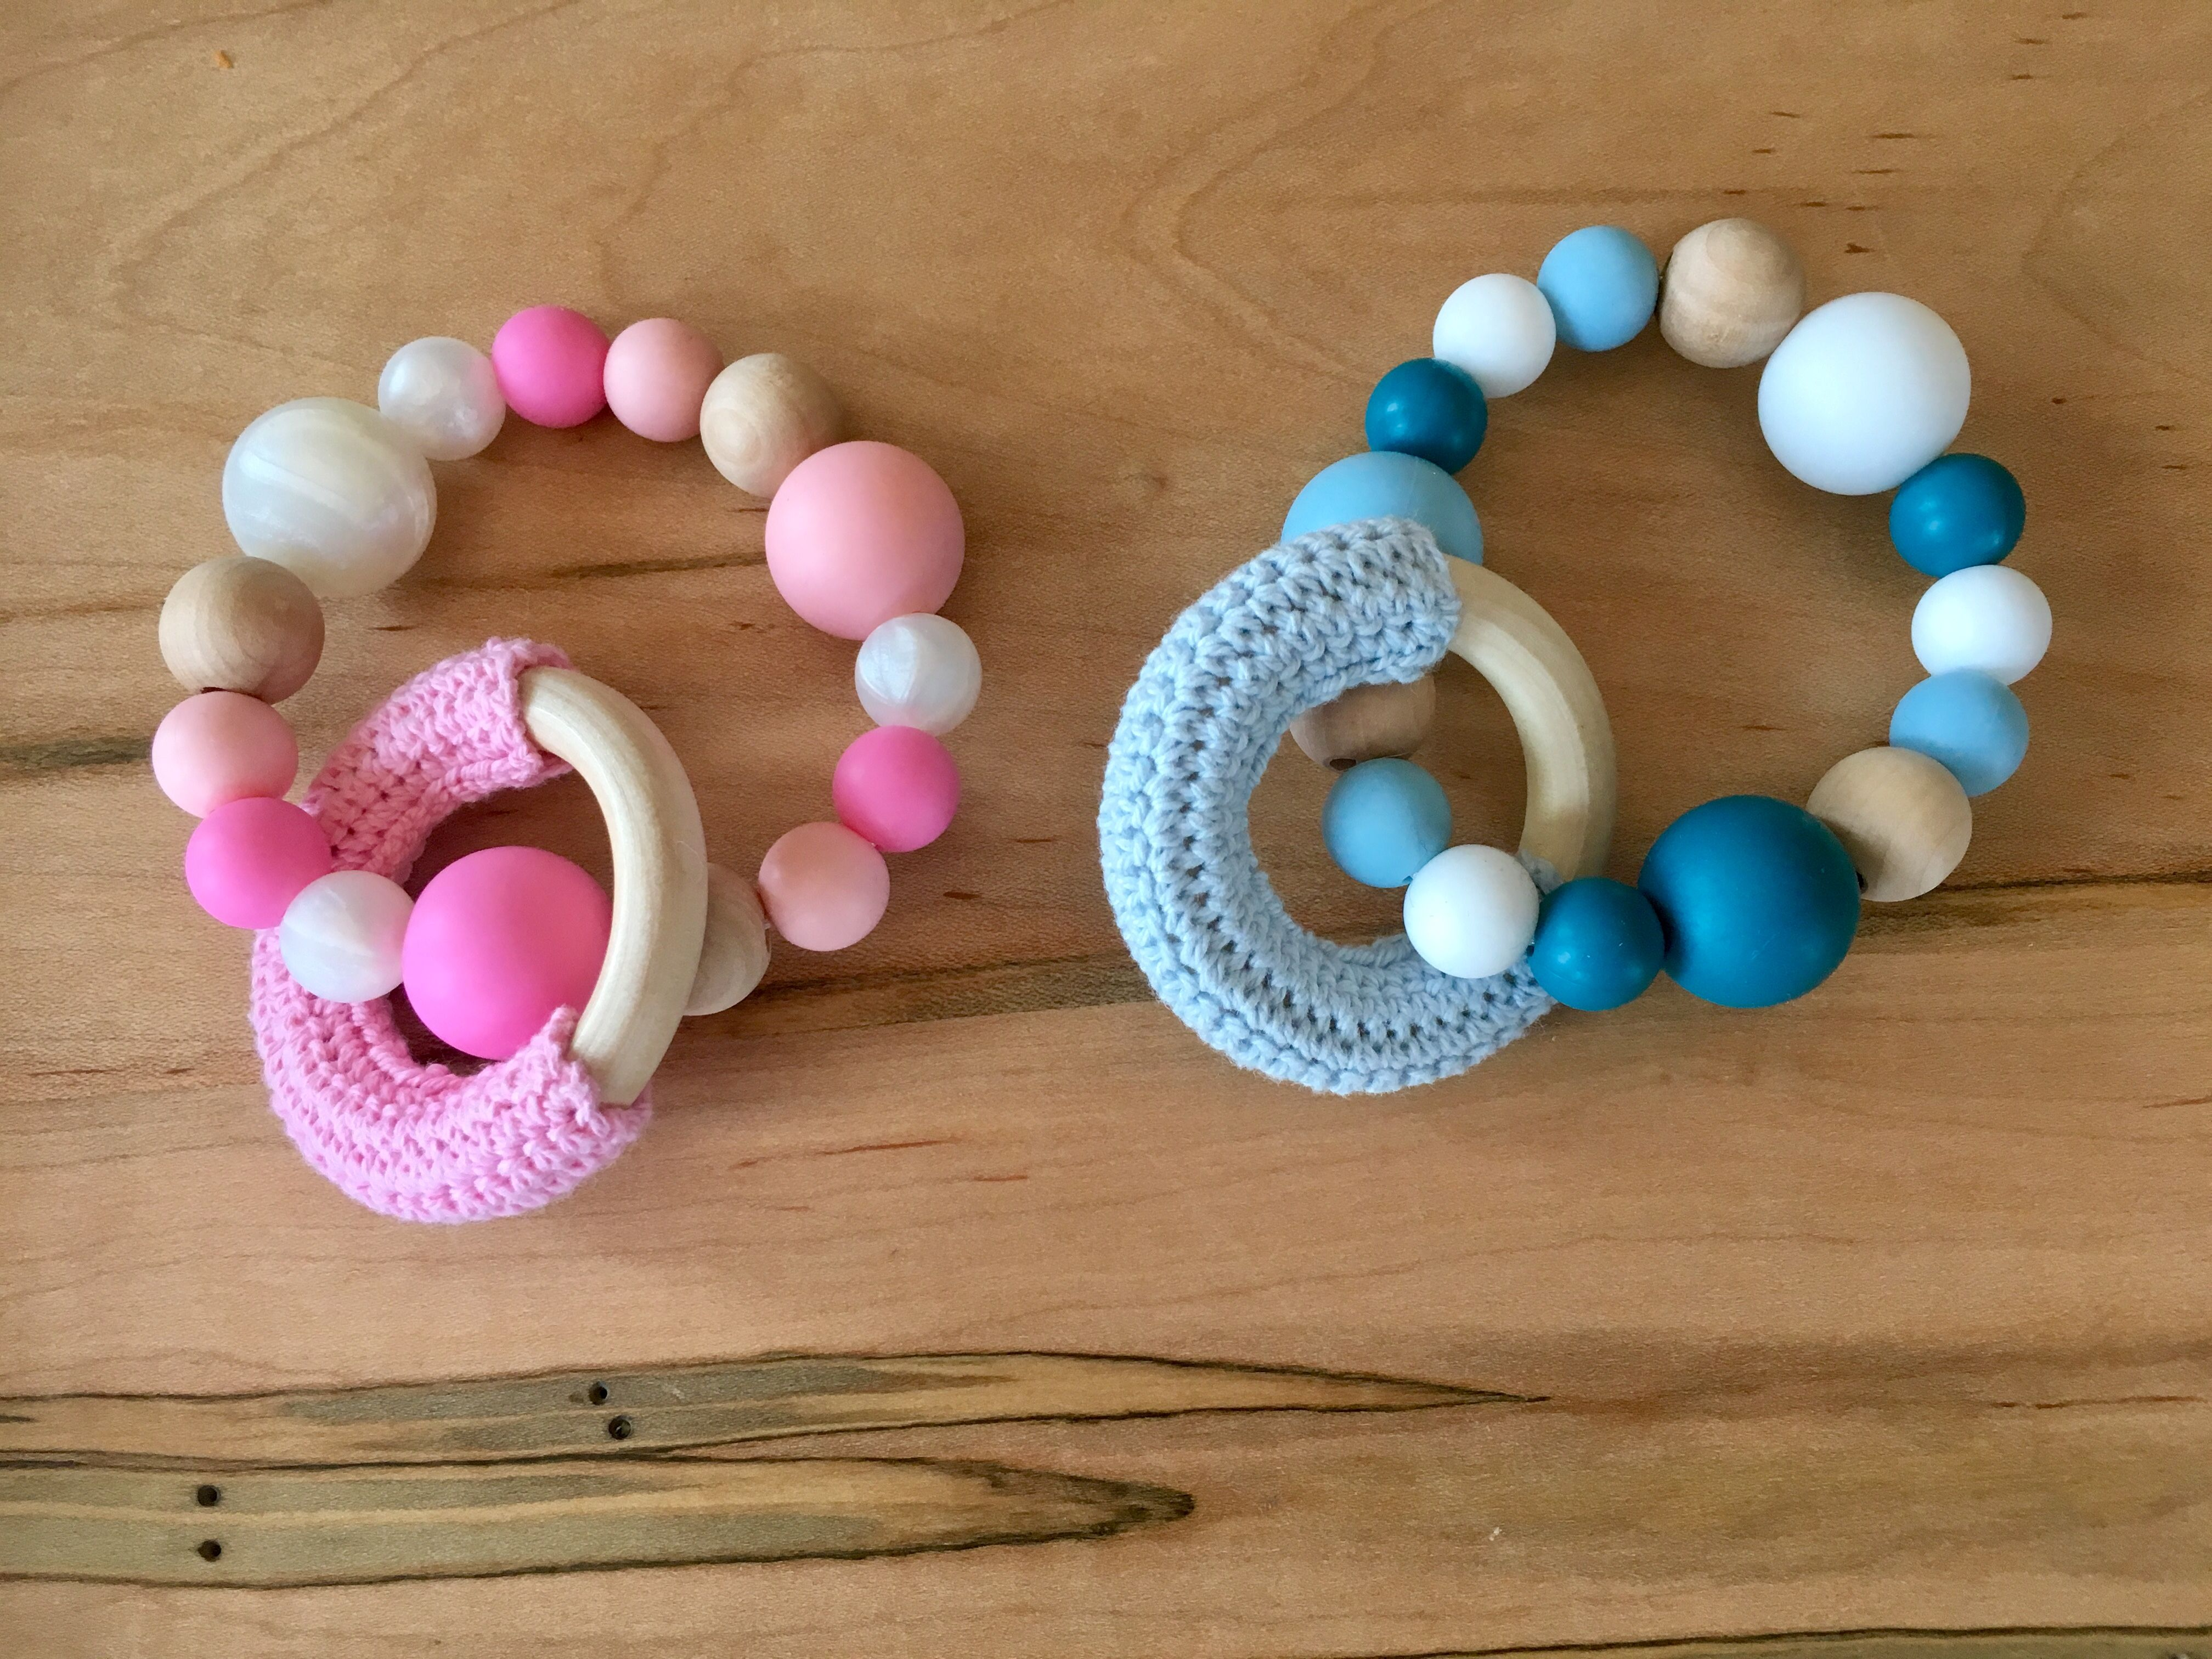 1 Set Natural Wooden Rings Crochet Teether Beads DIY Baby Teething Toys Jewelry